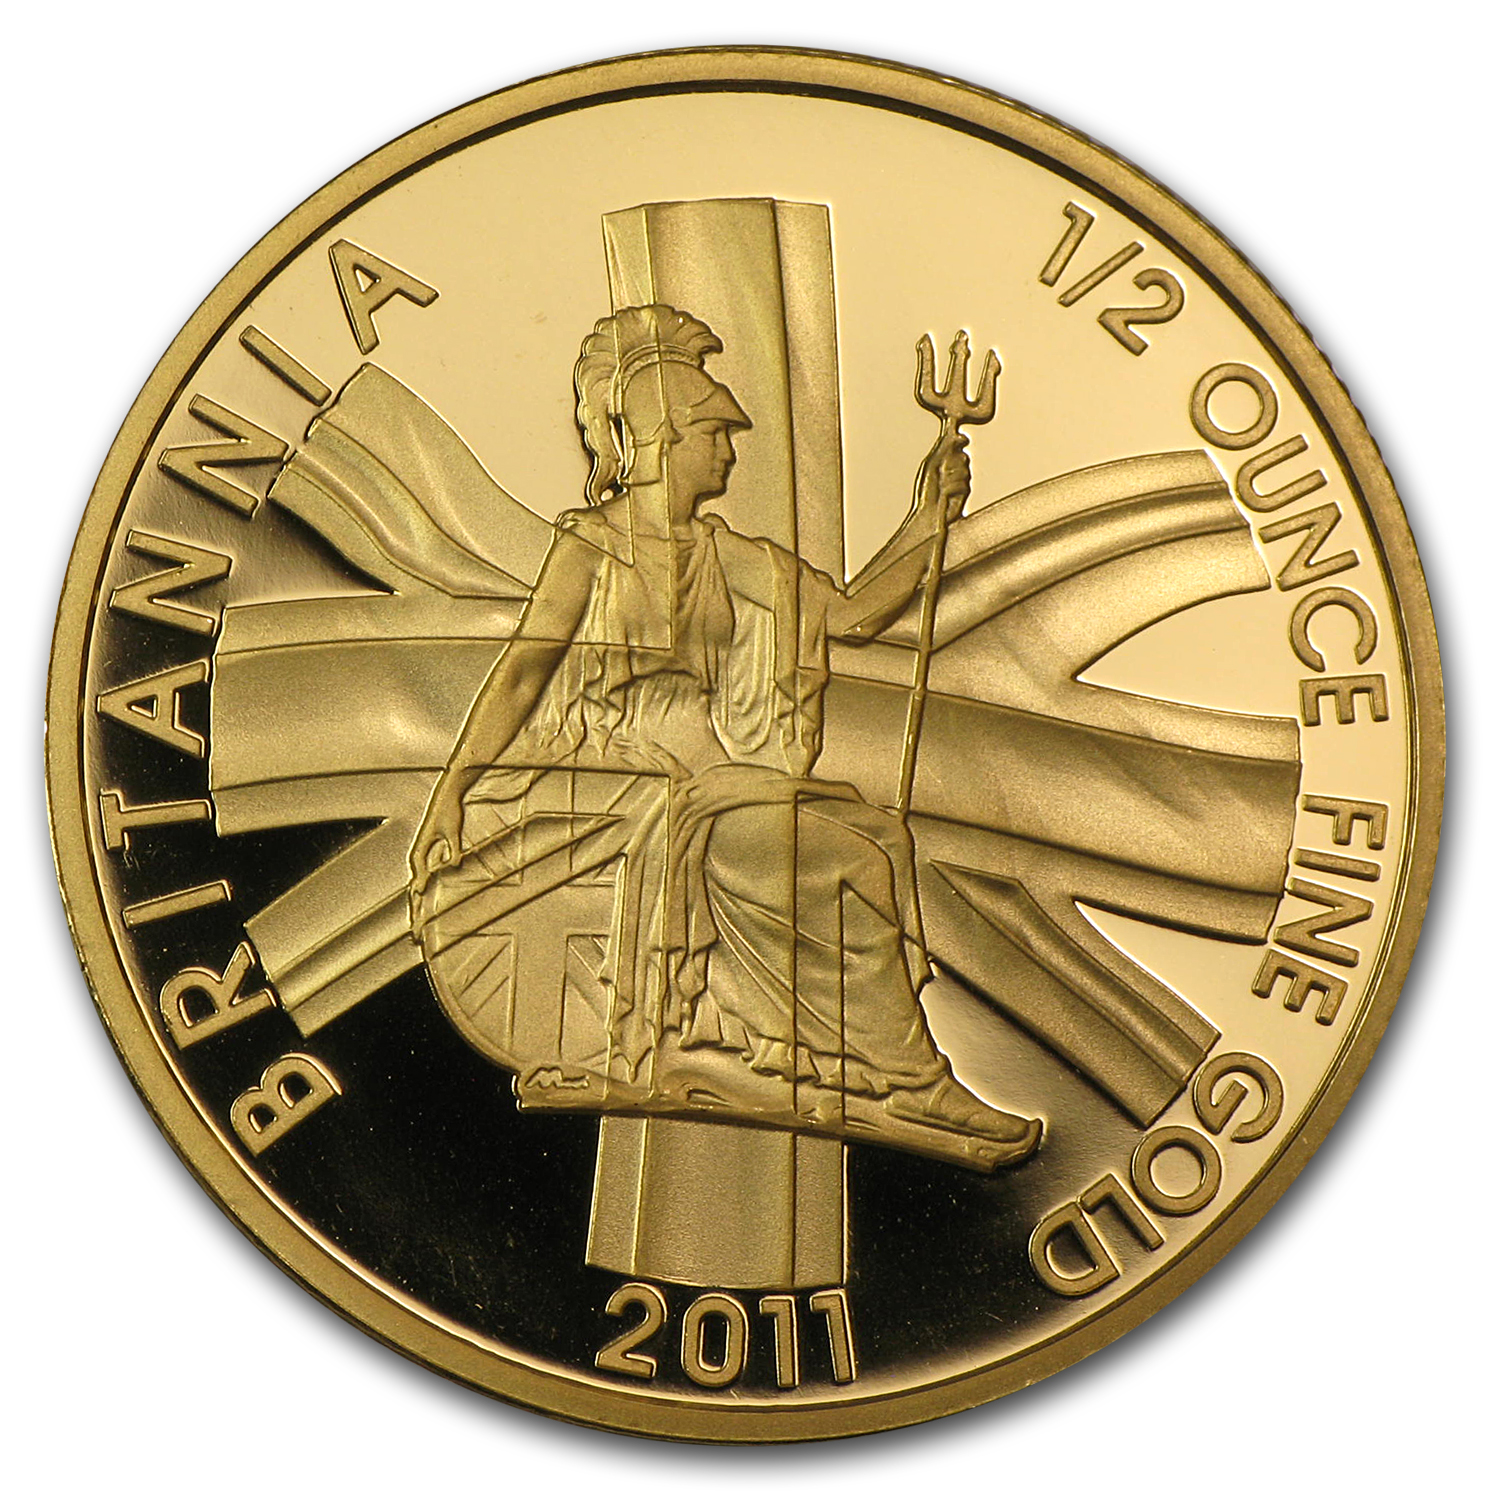 2011 1/2 oz Proof Gold Britannia (Capsule)